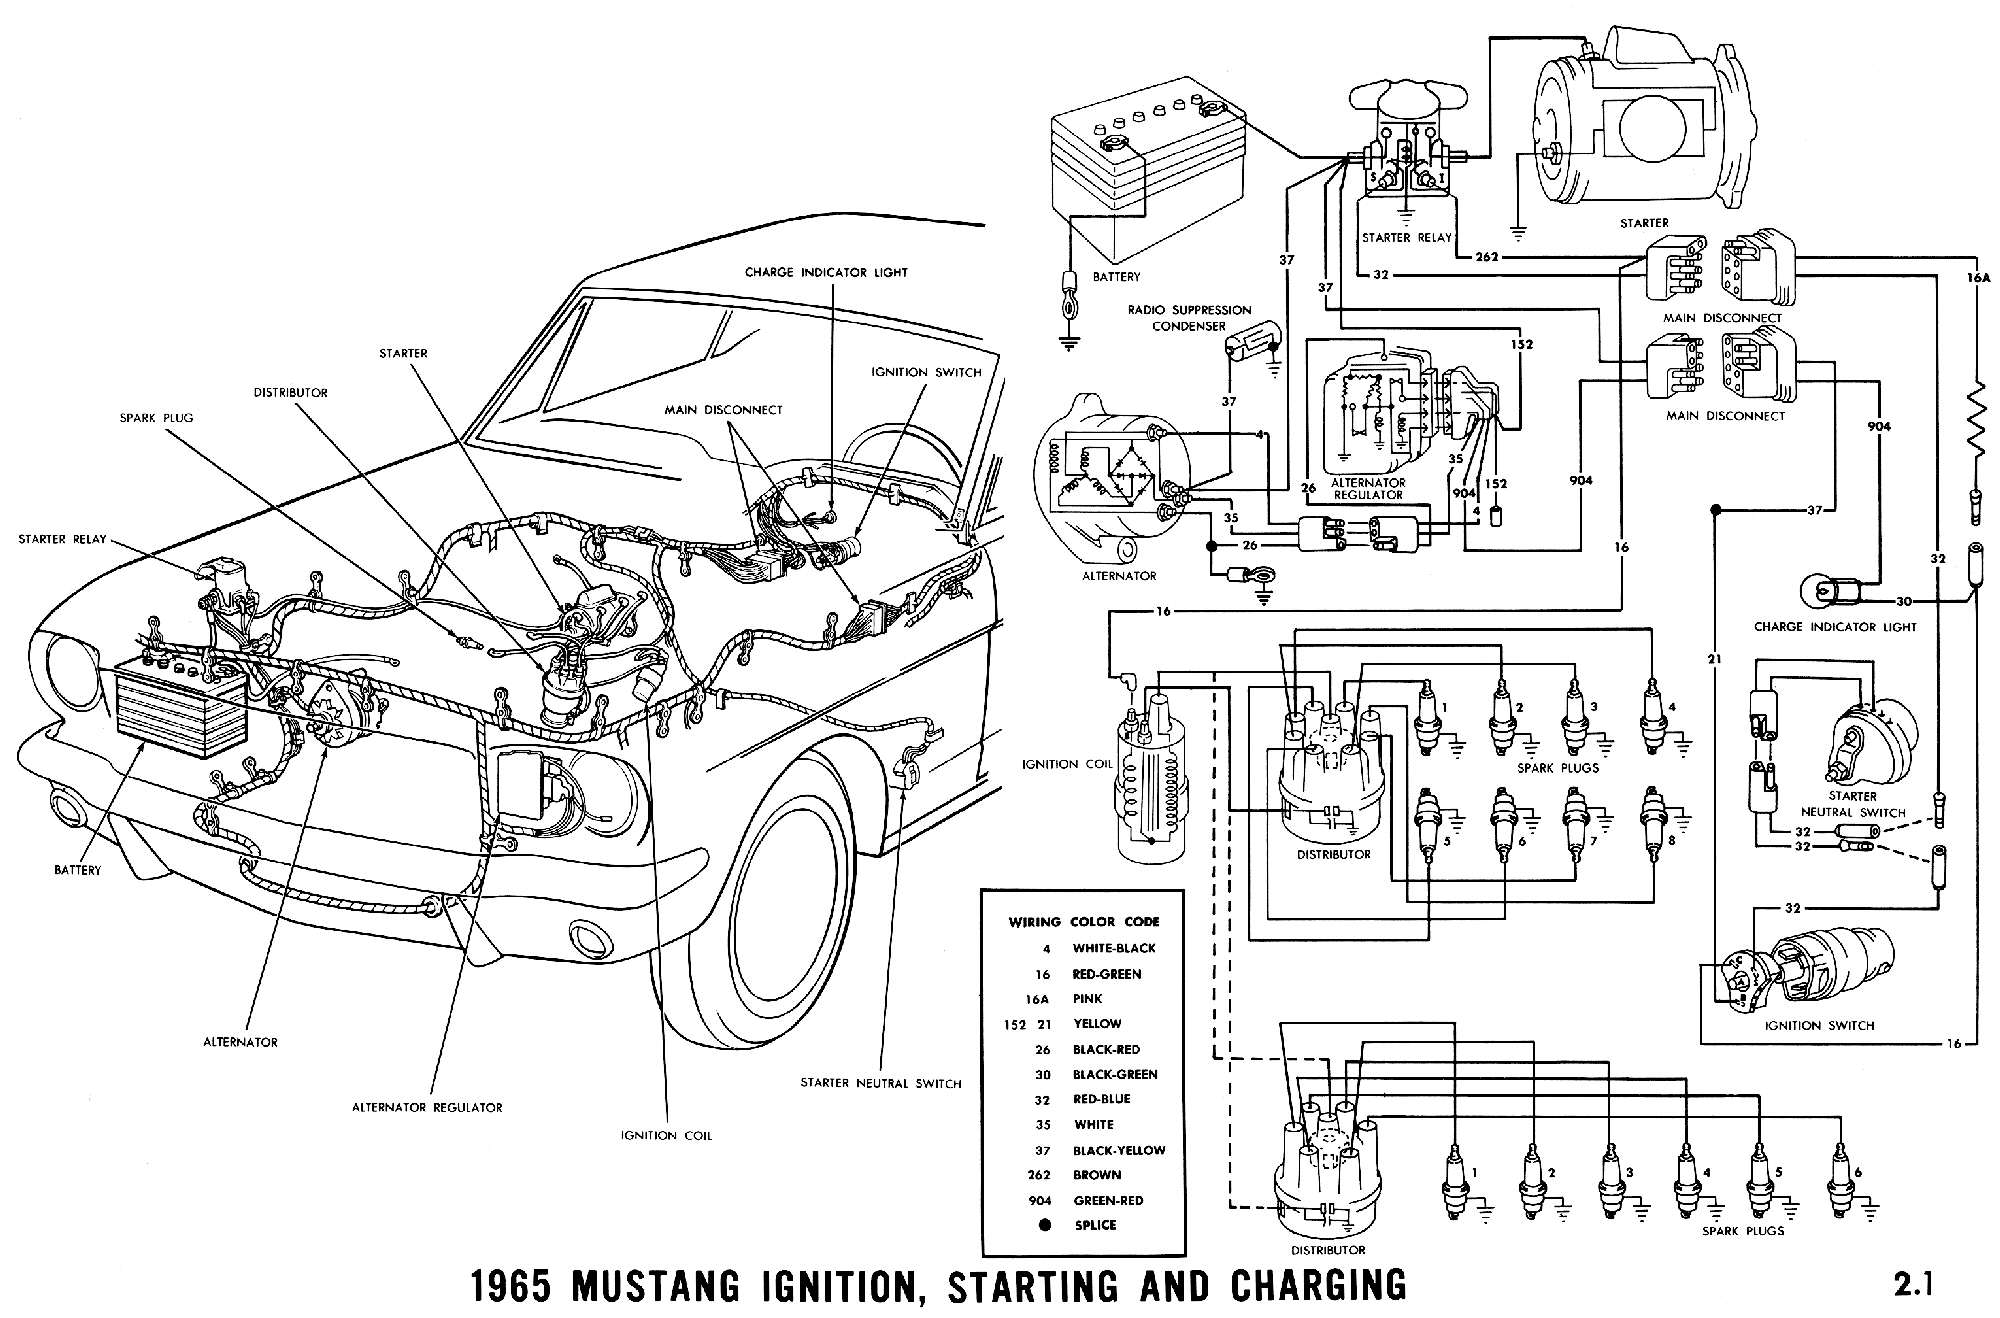 1965c 1965 mustang wiring diagrams average joe restoration 1965 ford alternator wiring diagram at eliteediting.co